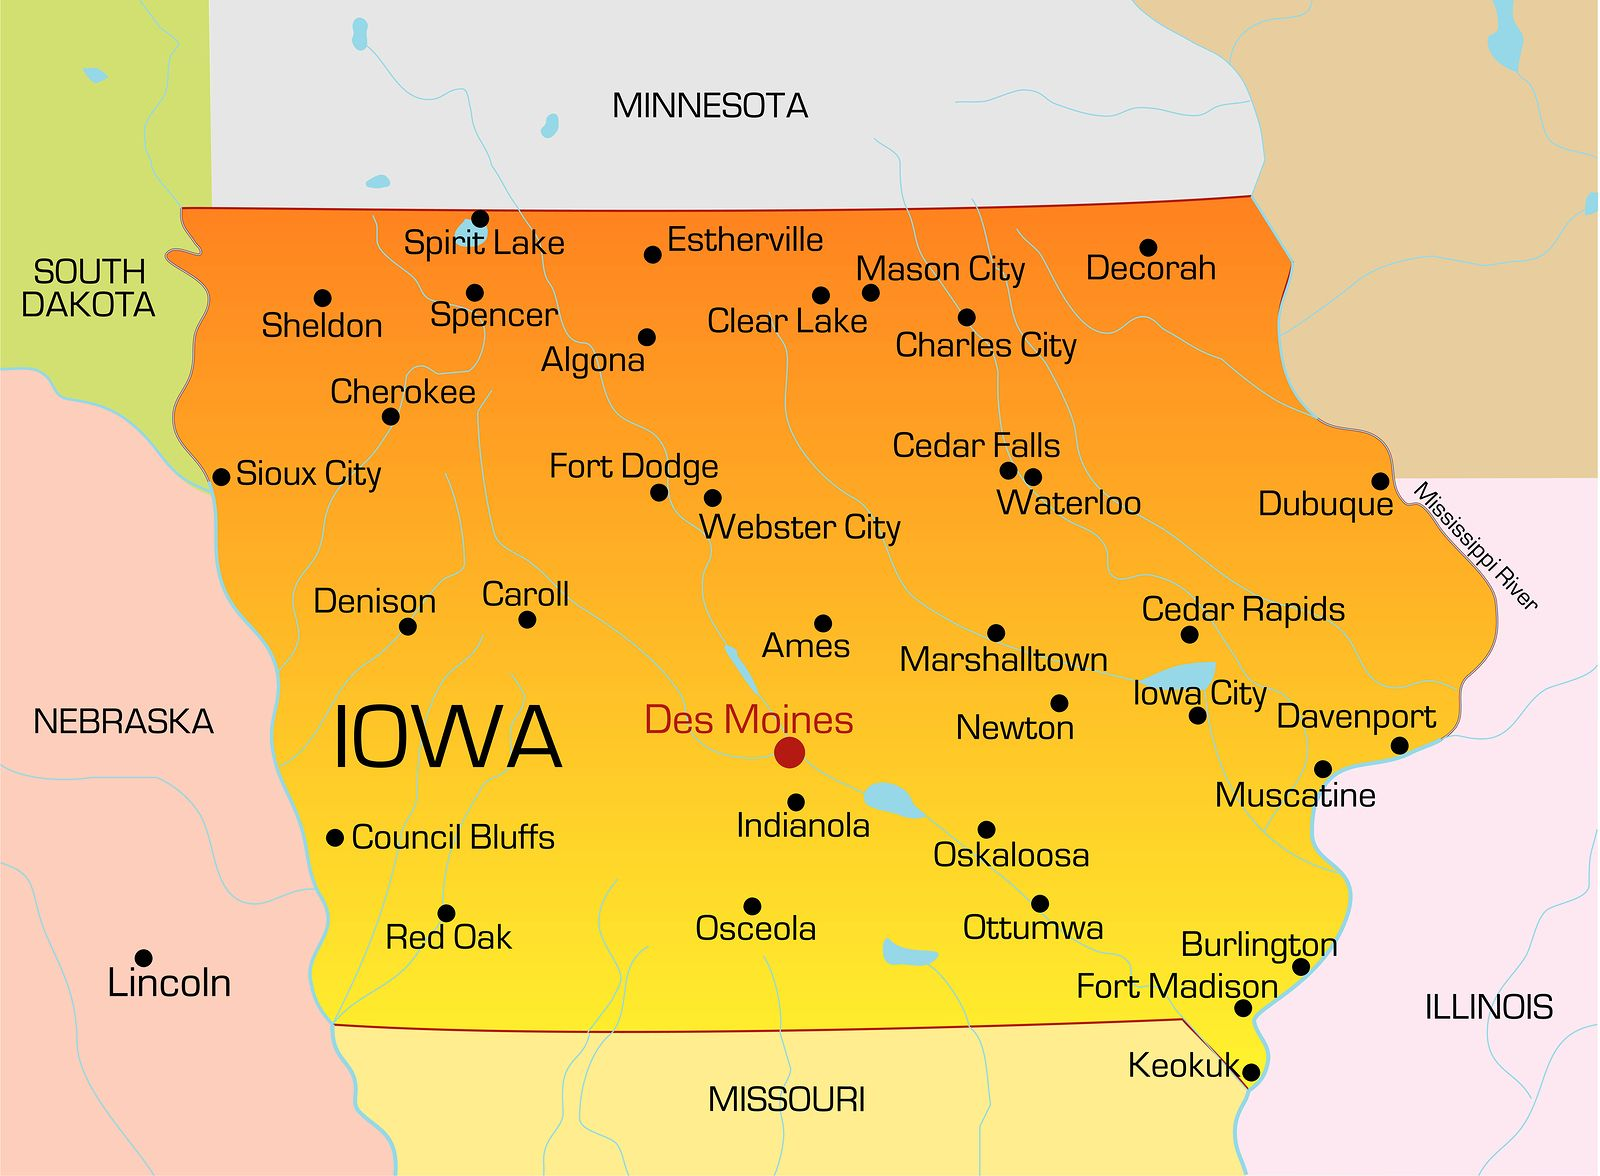 Are You Looking To Get Your Cna Certification Or Training In Iowa